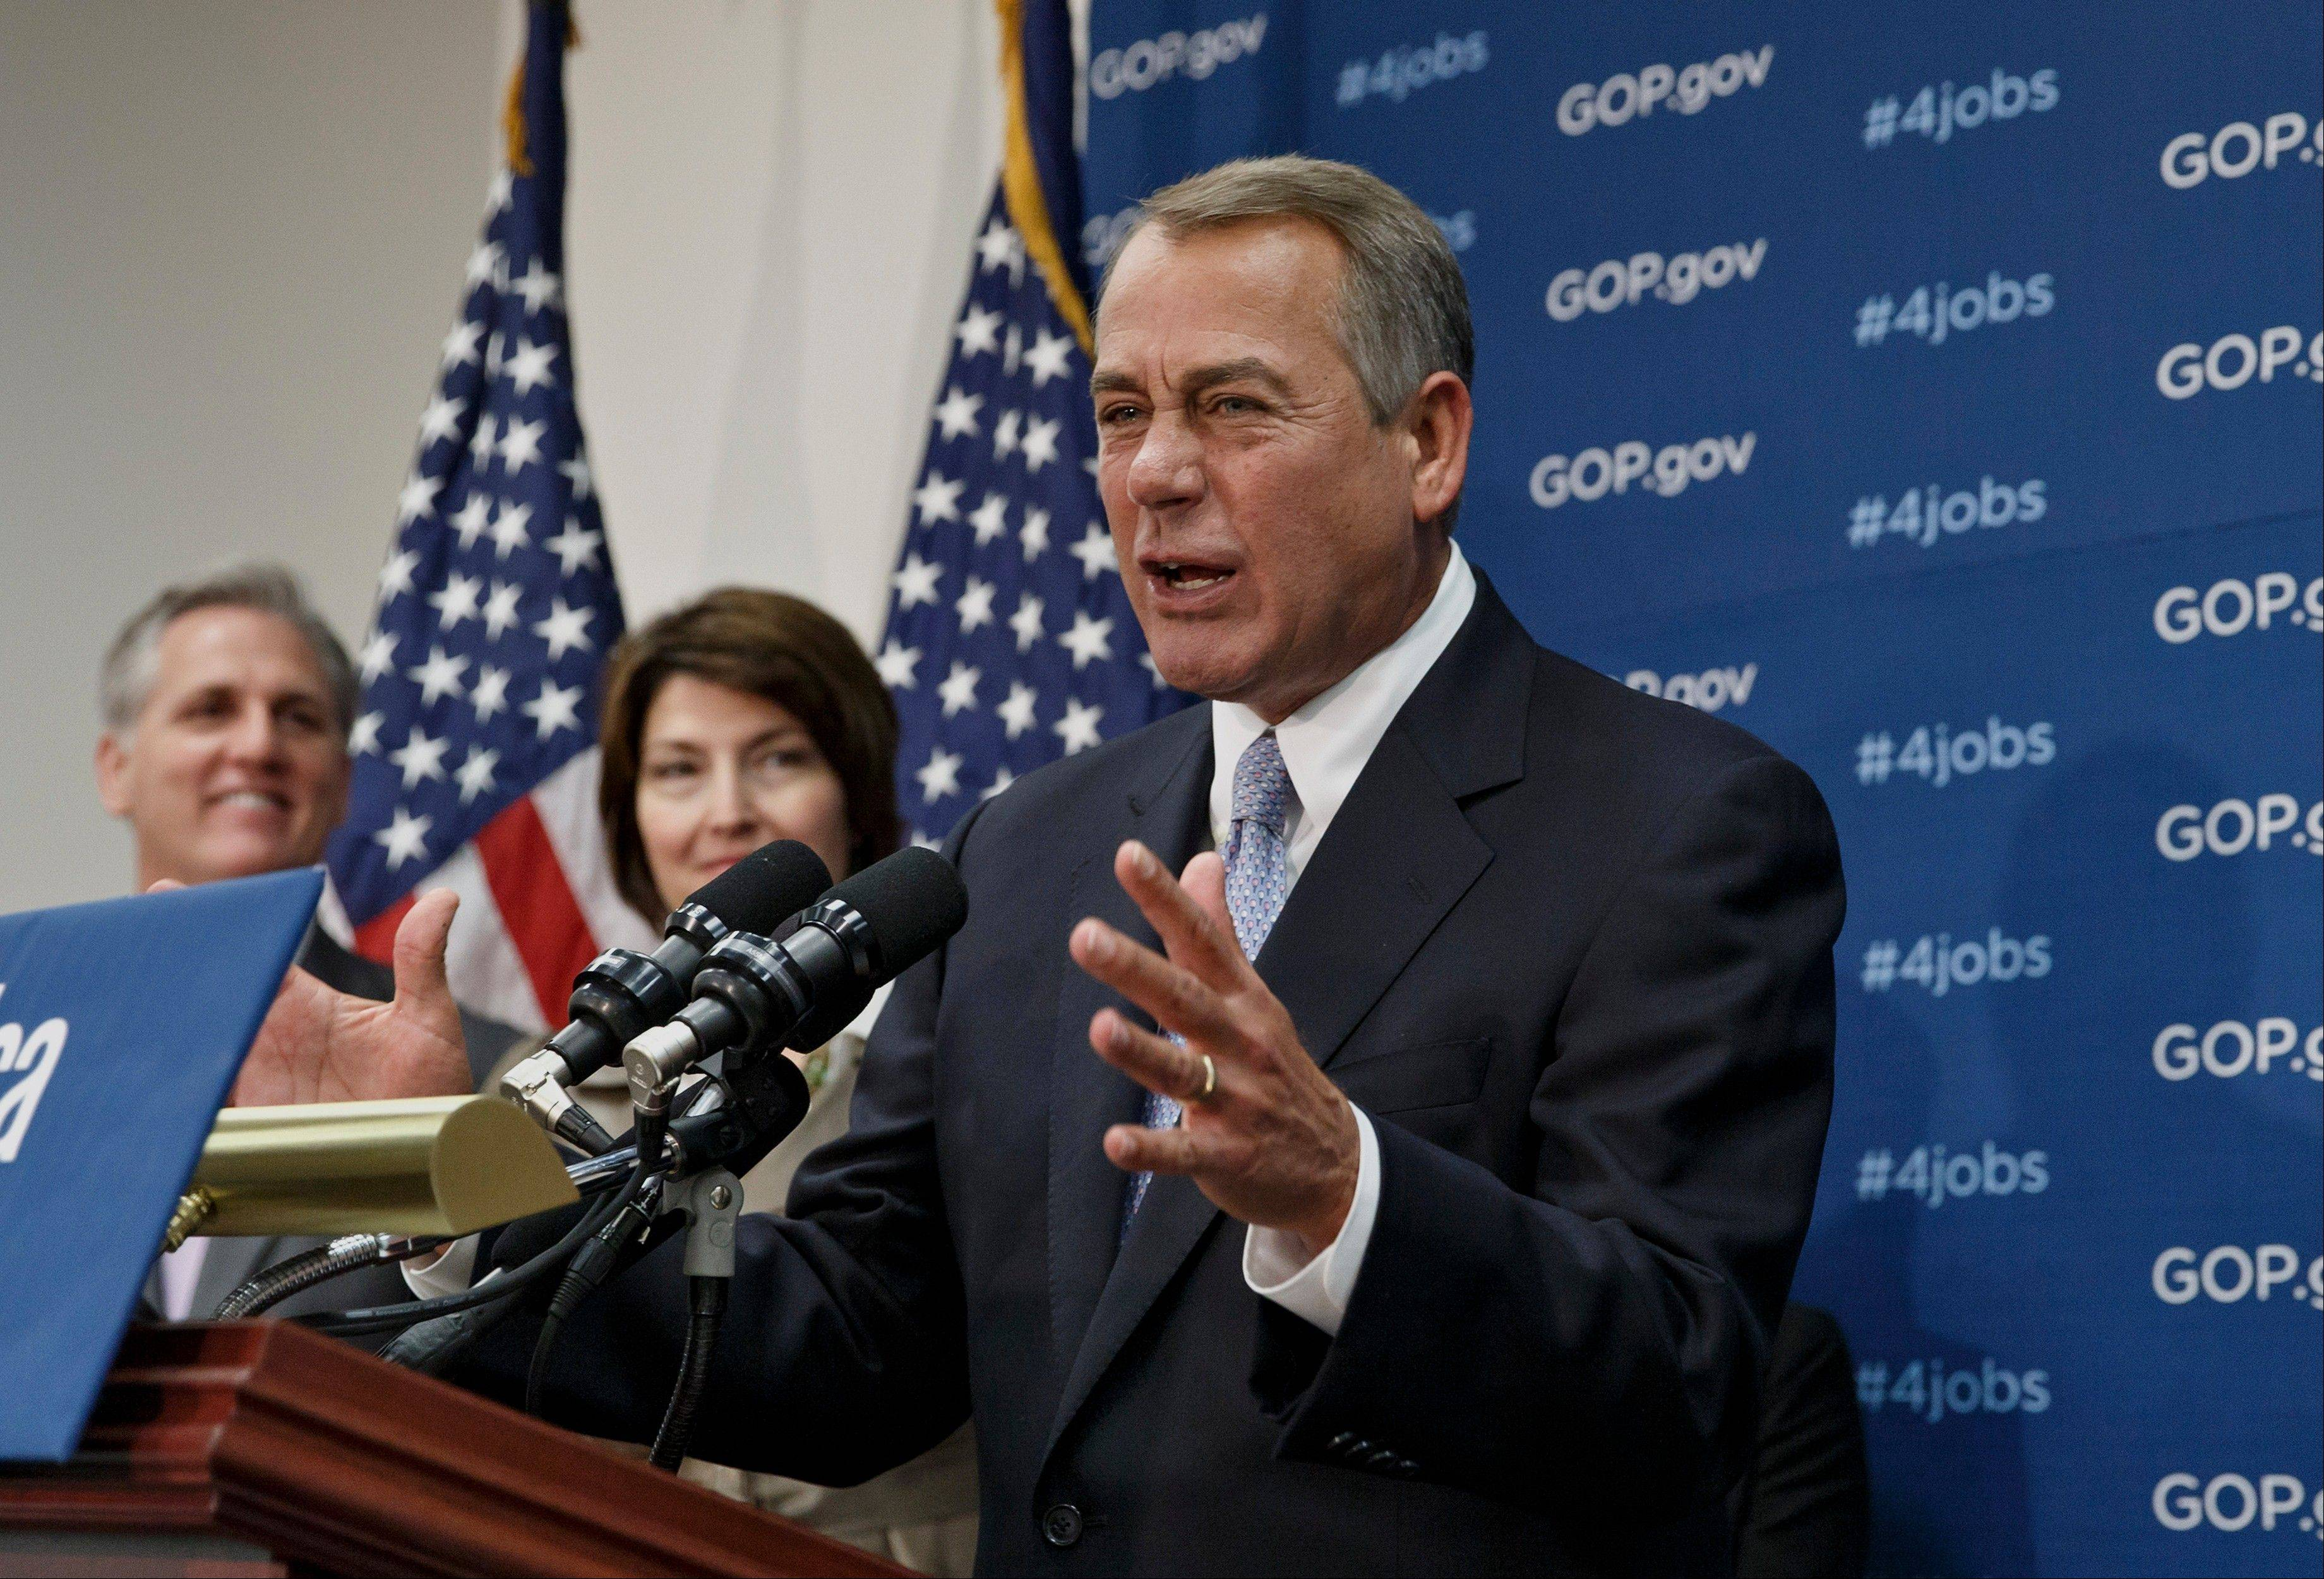 Several million people will reduce their hours on the job or leave the workforce entirely because of incentives built into President Barack Obama�s health care overhaul, the Congressional Budget Office said Tuesday. House Speaker John Boehner of Ohio, right, is seen here, accompanied by House Majority Whip Kevin McCarthy of Calif., left, and Rep. Cathy McMorris Rodgers of Washington.